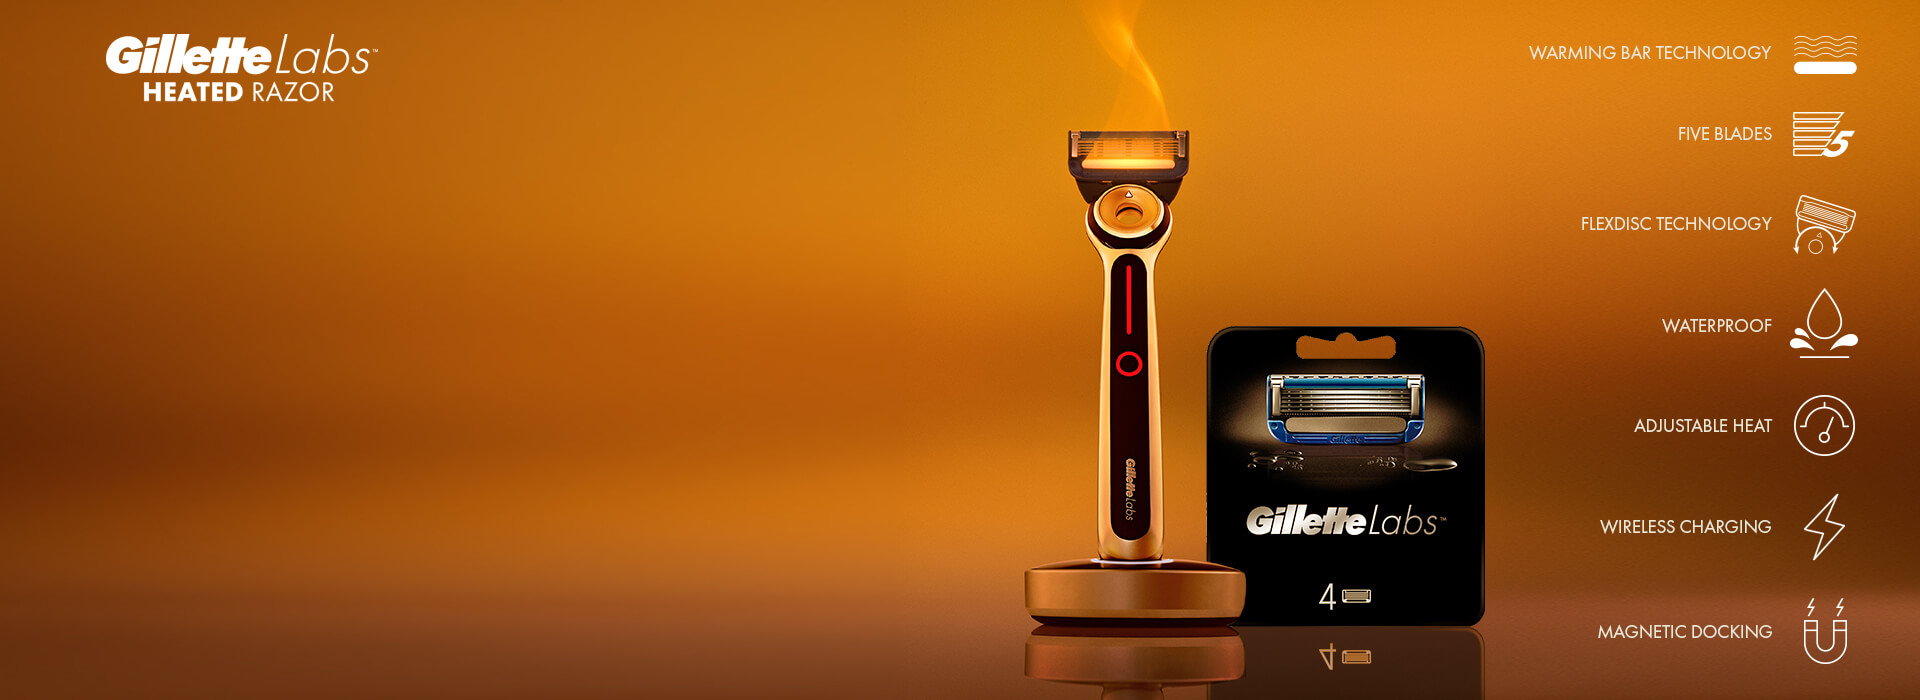 Gillette Heated Razor & Blades